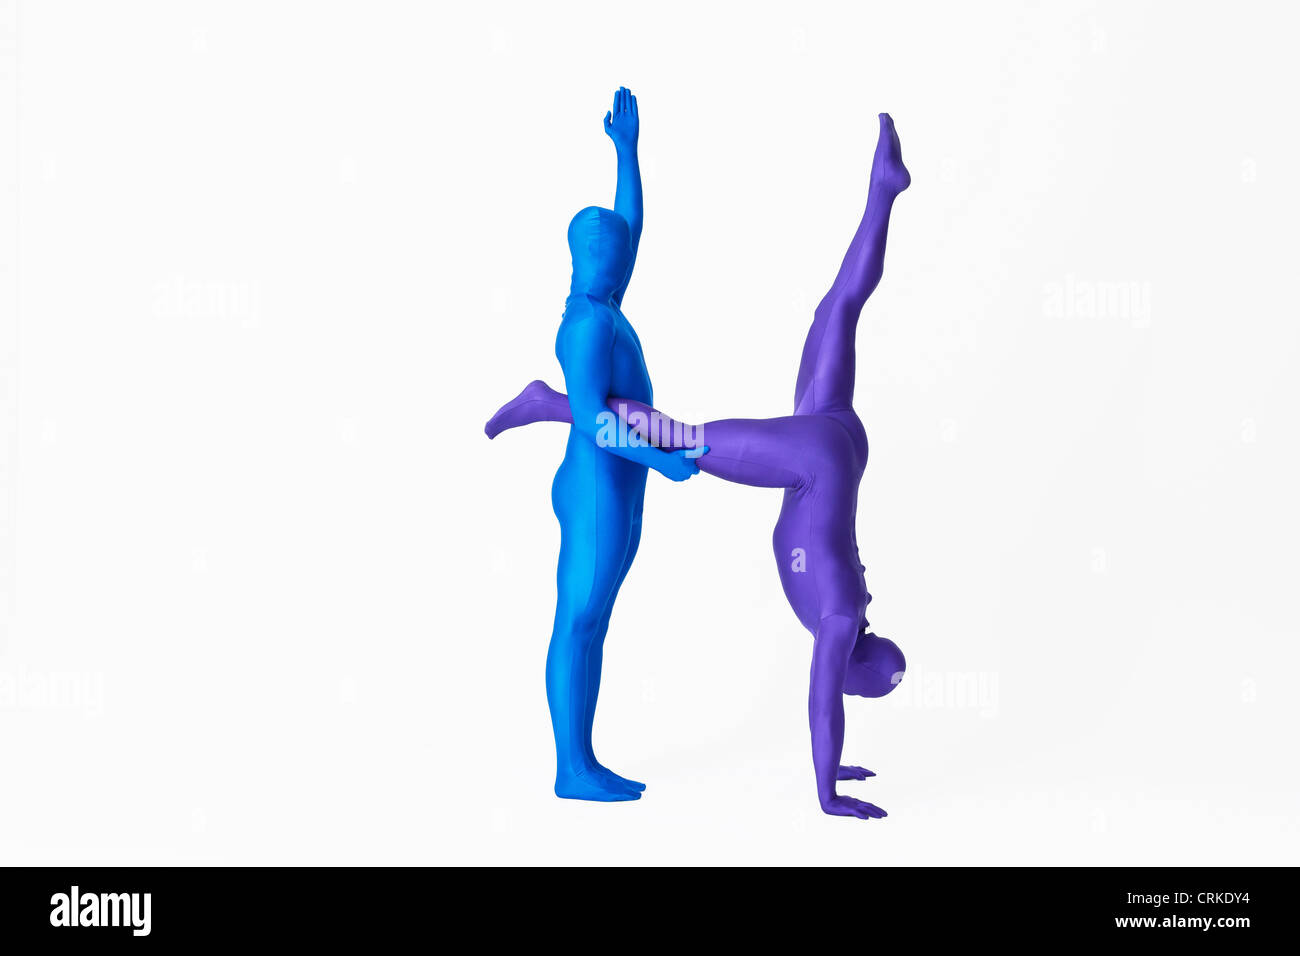 Men in bodysuits making the letter H - Stock Image